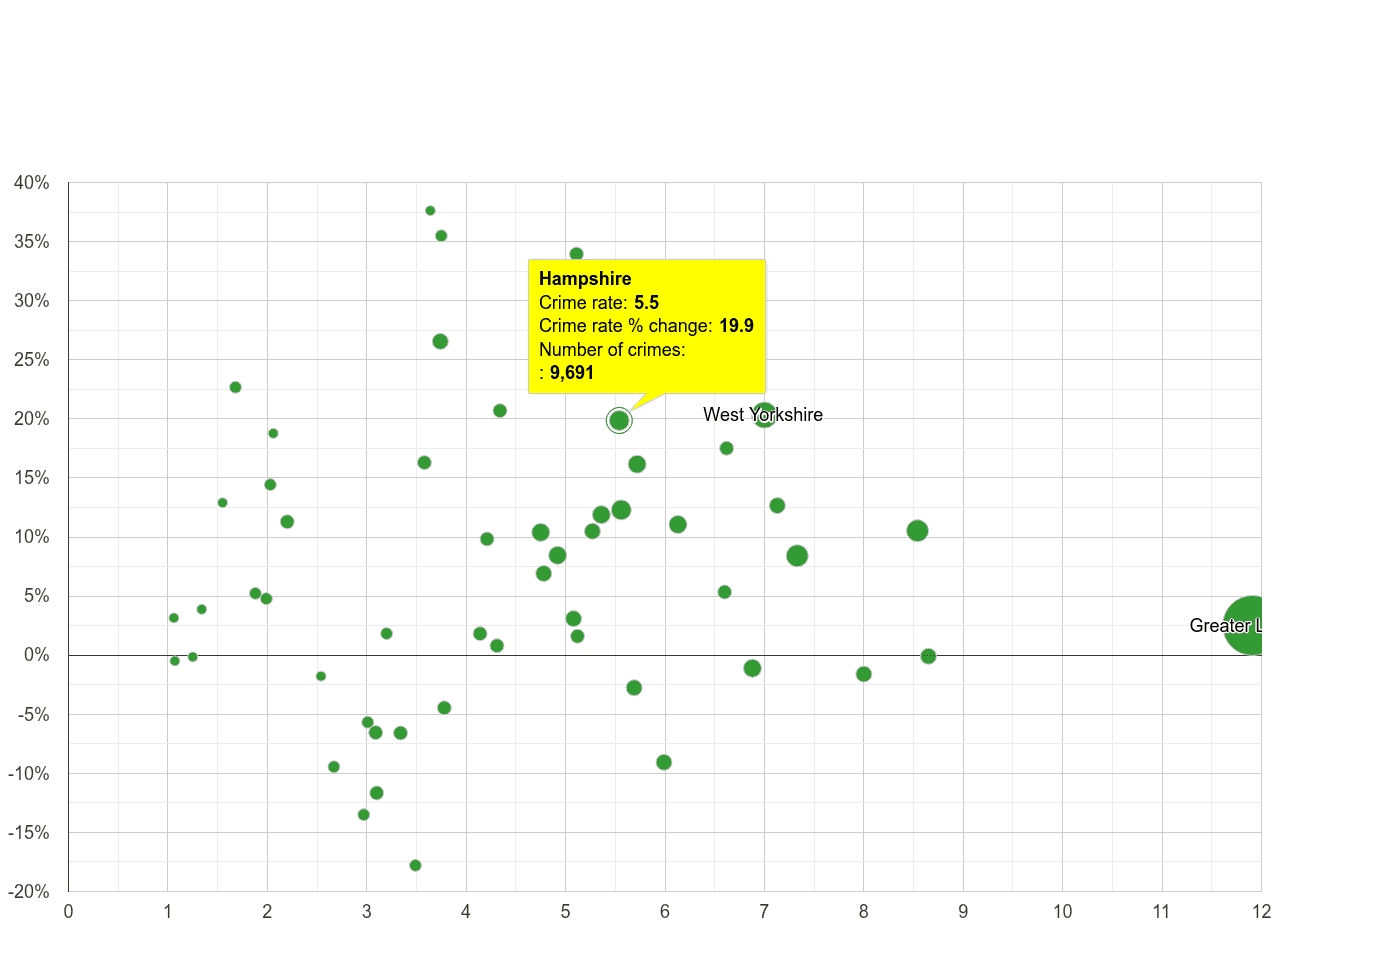 Hampshire vehicle crime rate compared to other counties